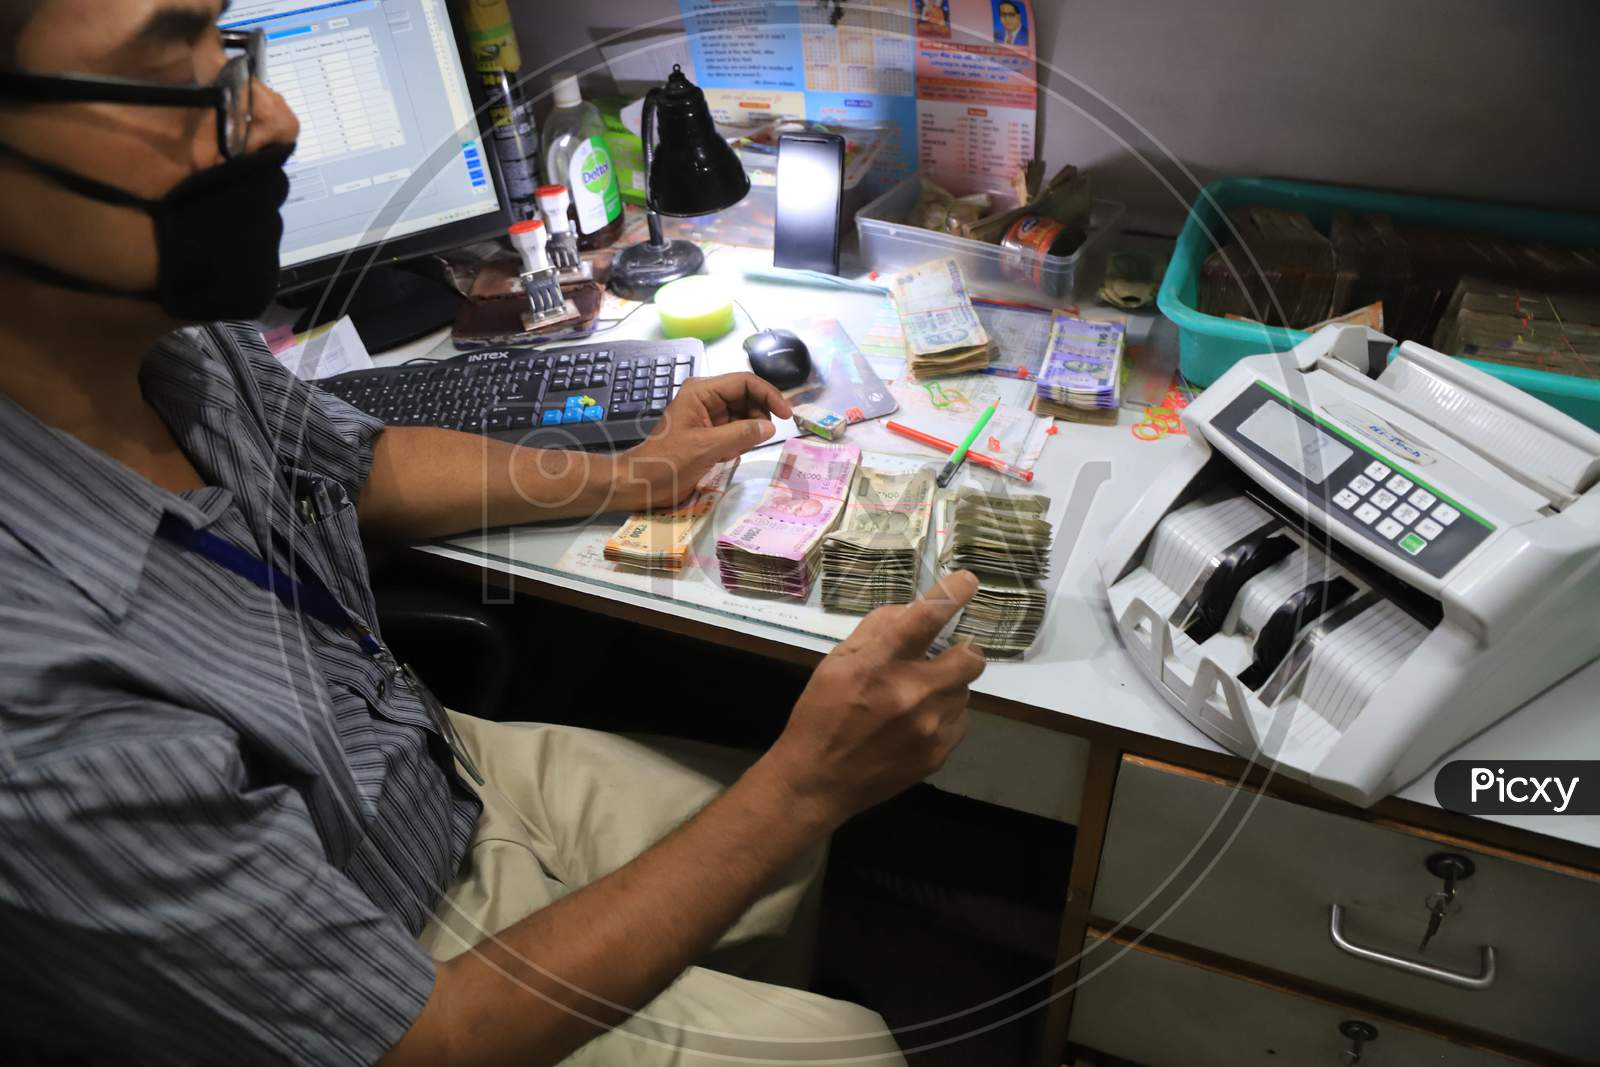 A Bank Employee Sanitize Indian Currency In Side A Bank During A Nationwide Lockdown To Slow The Spreading Of The Coronavirus Disease (Covid-19), In Prayagraj, April, 17, 2020.